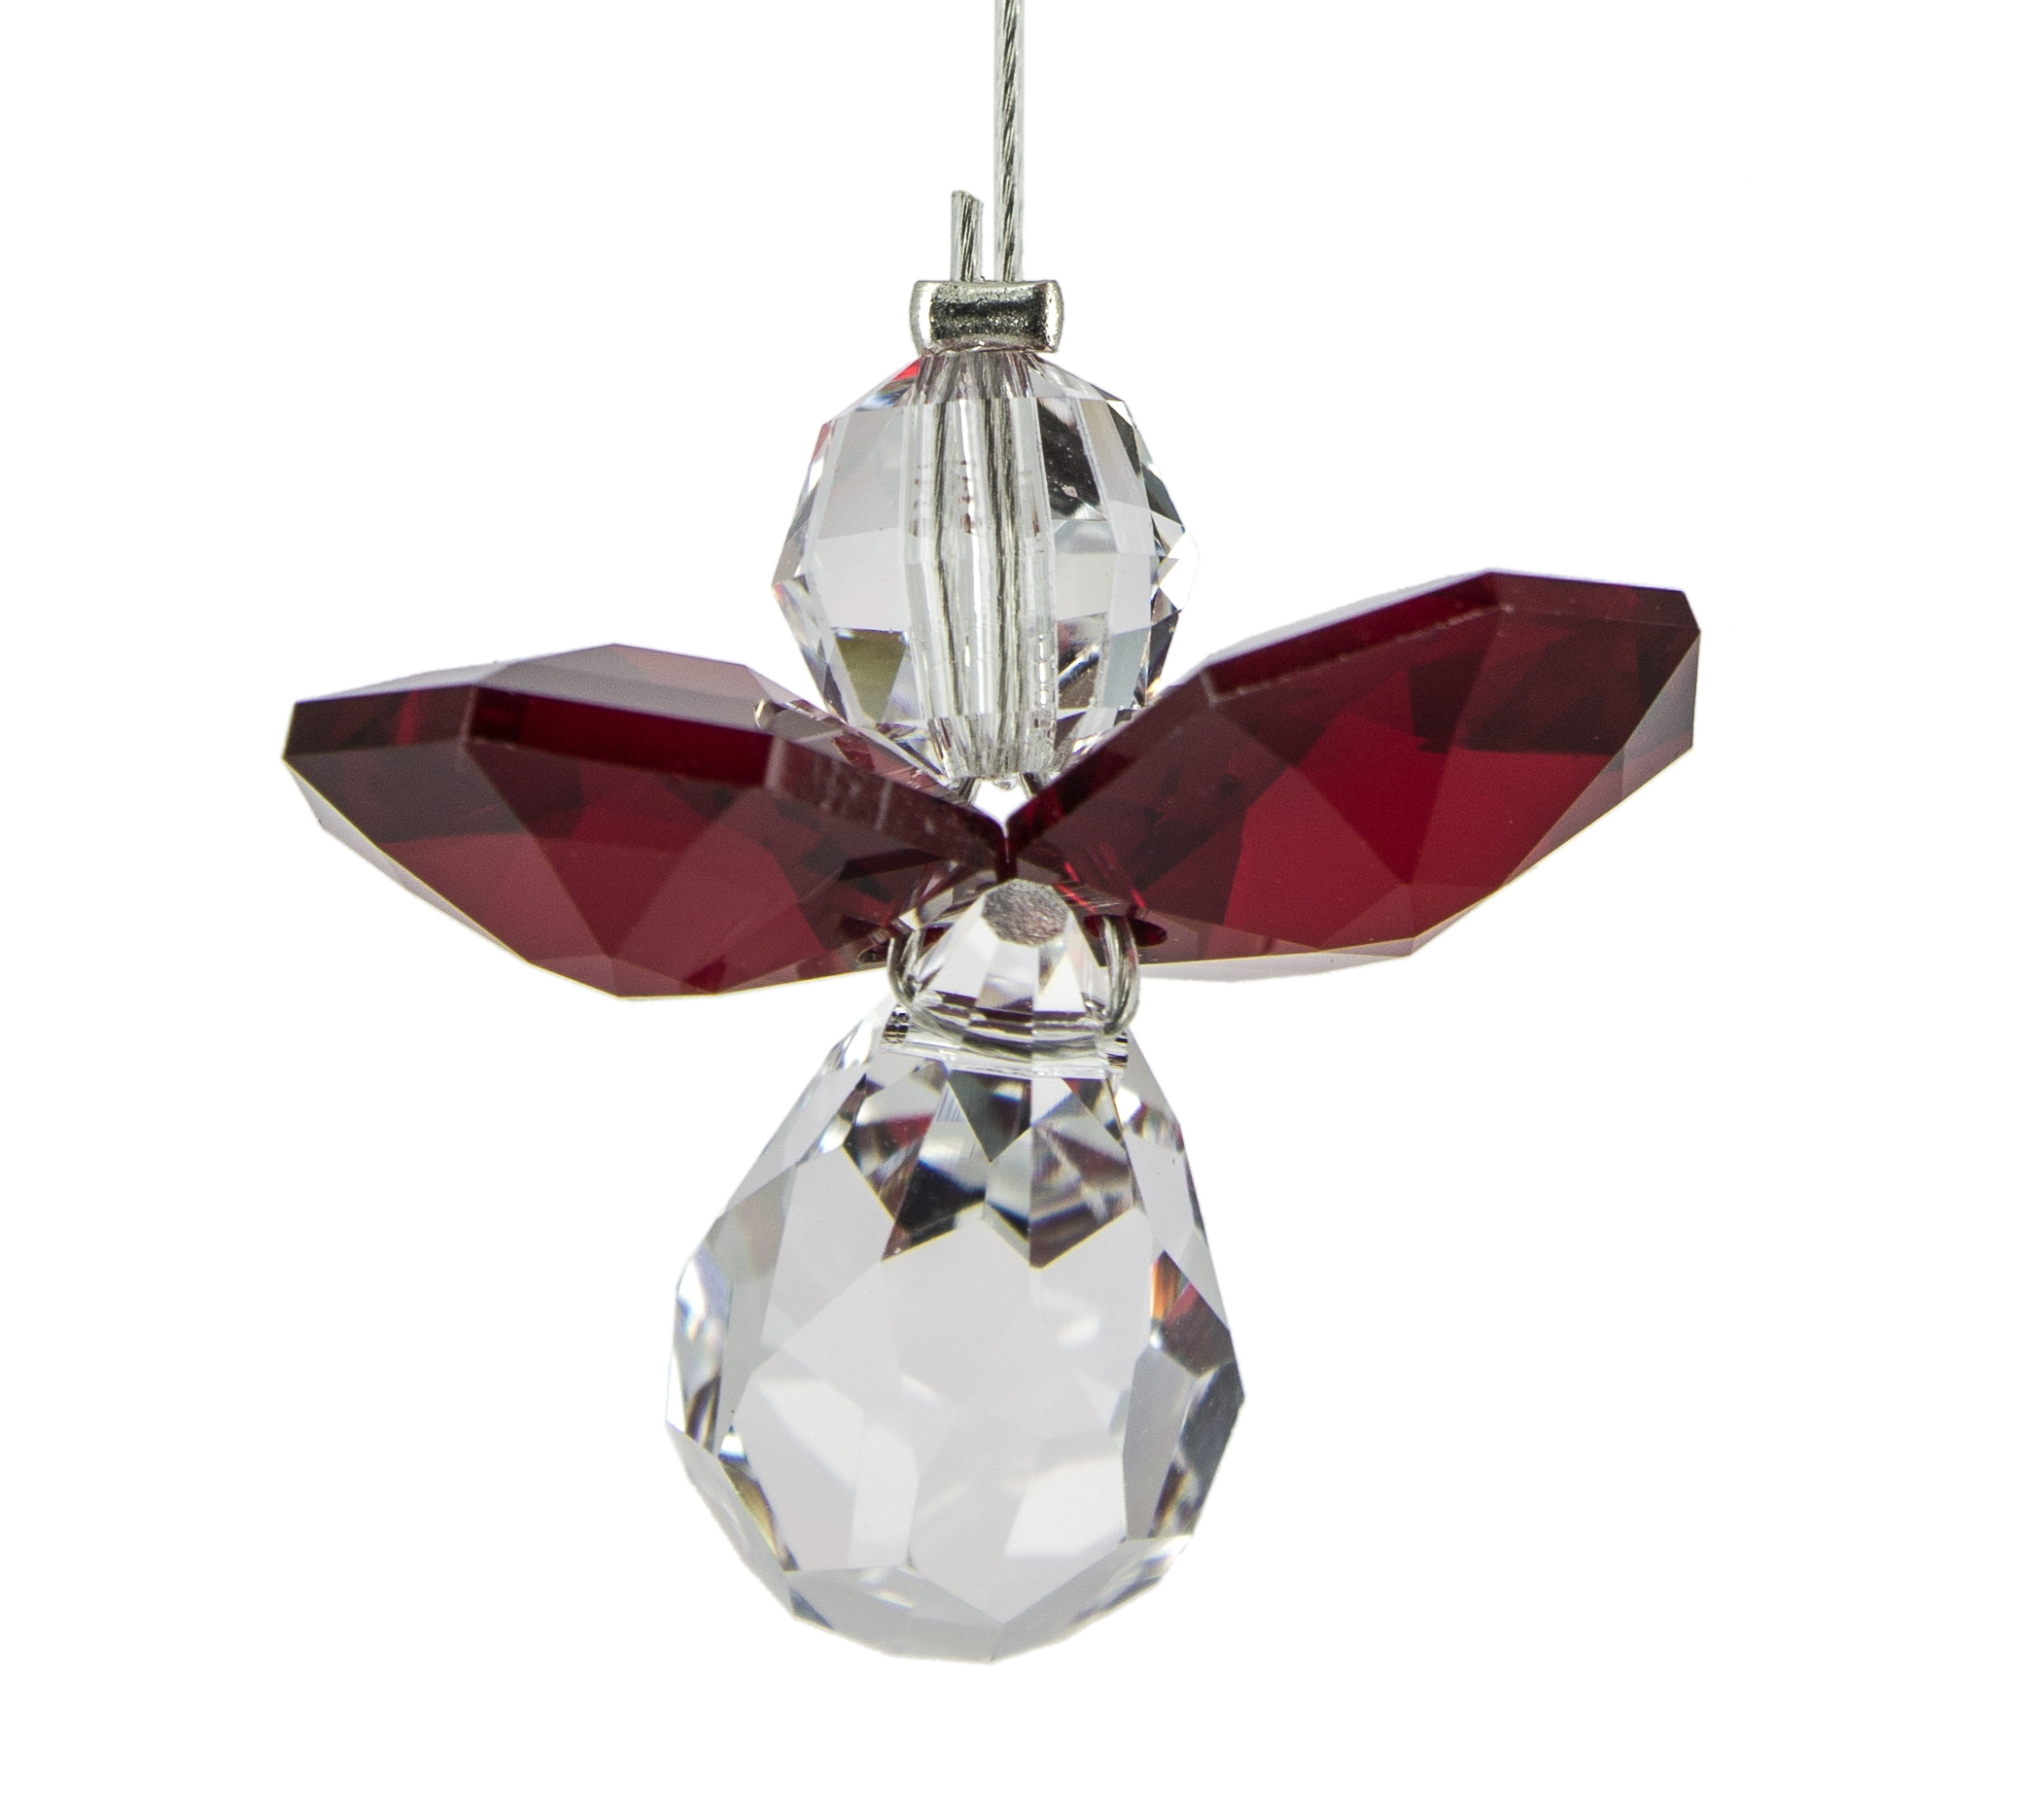 Birthstone Guardian Angel Crystal Suncatcher - Garnet, January